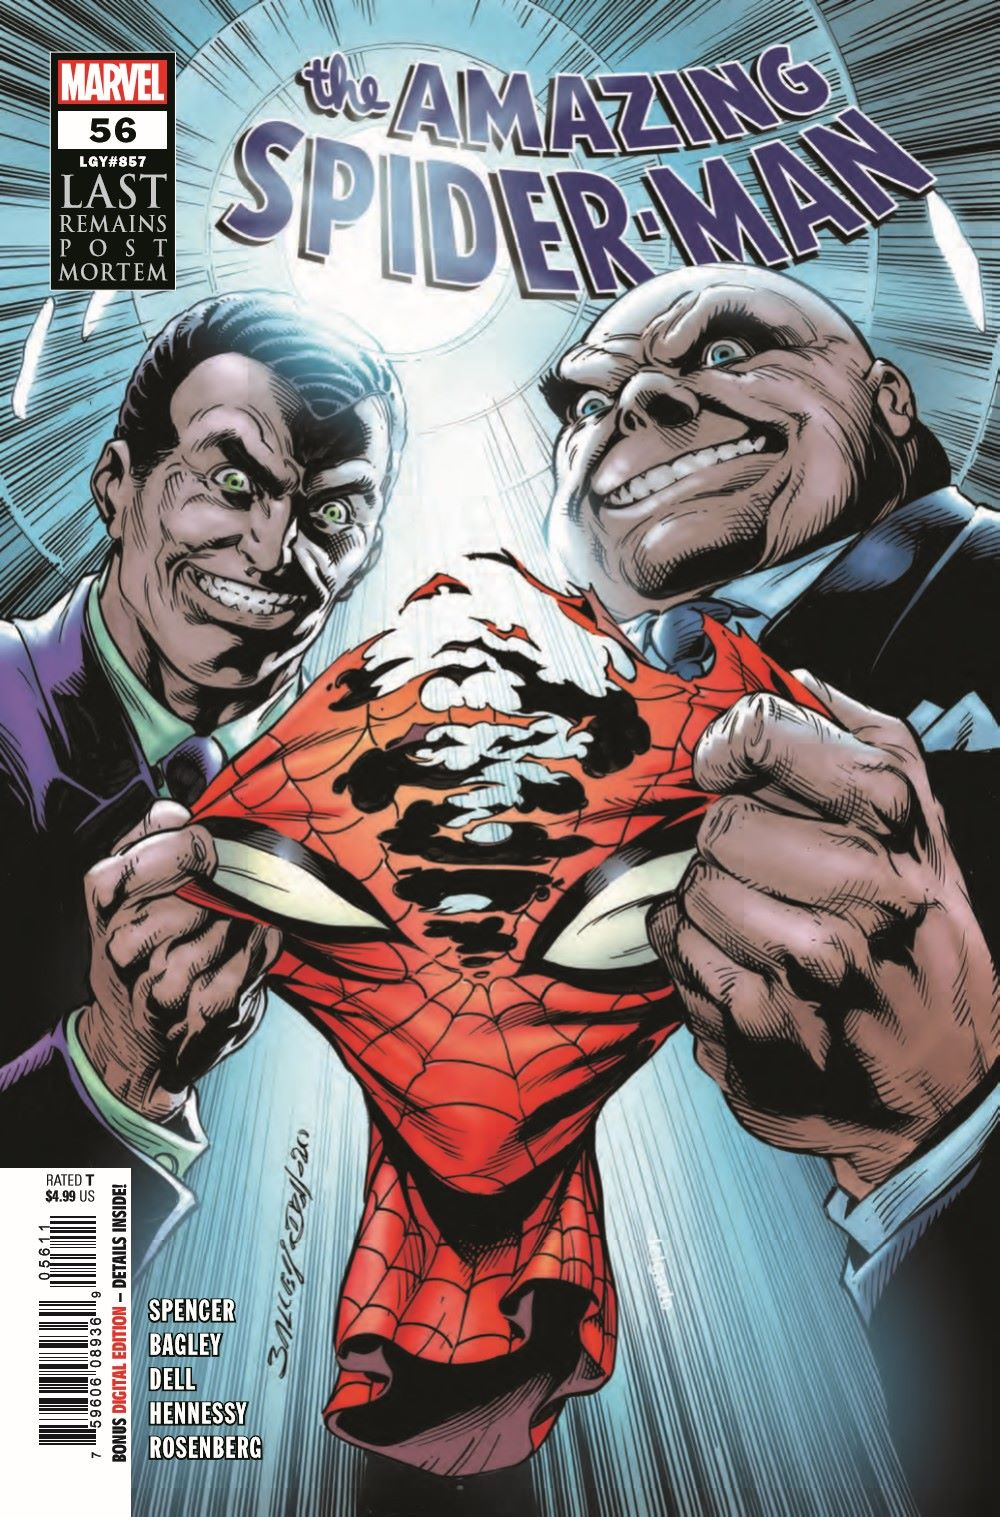 ASM2018056_Preview-1-1 ComicList Previews: THE AMAZING SPIDER-MAN #56